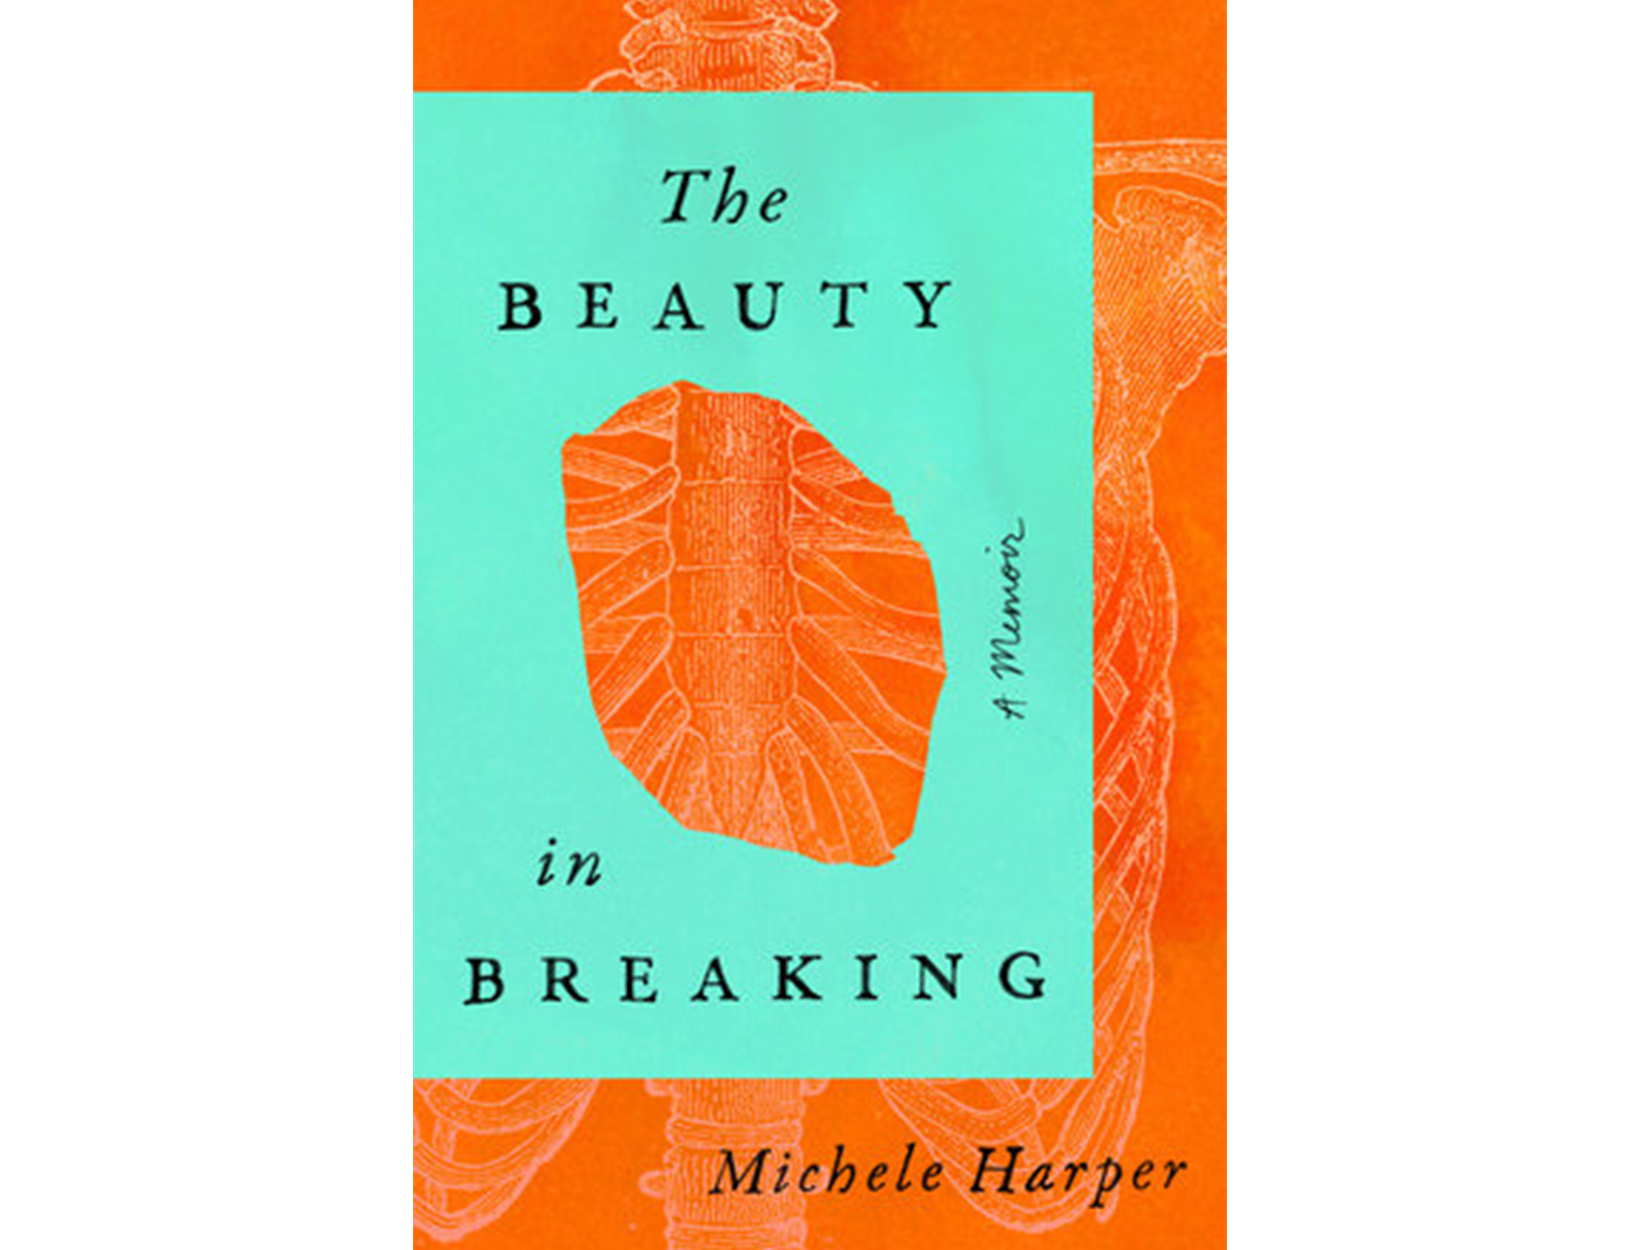 <em>The Beauty in Breaking</em> by Michele Harper